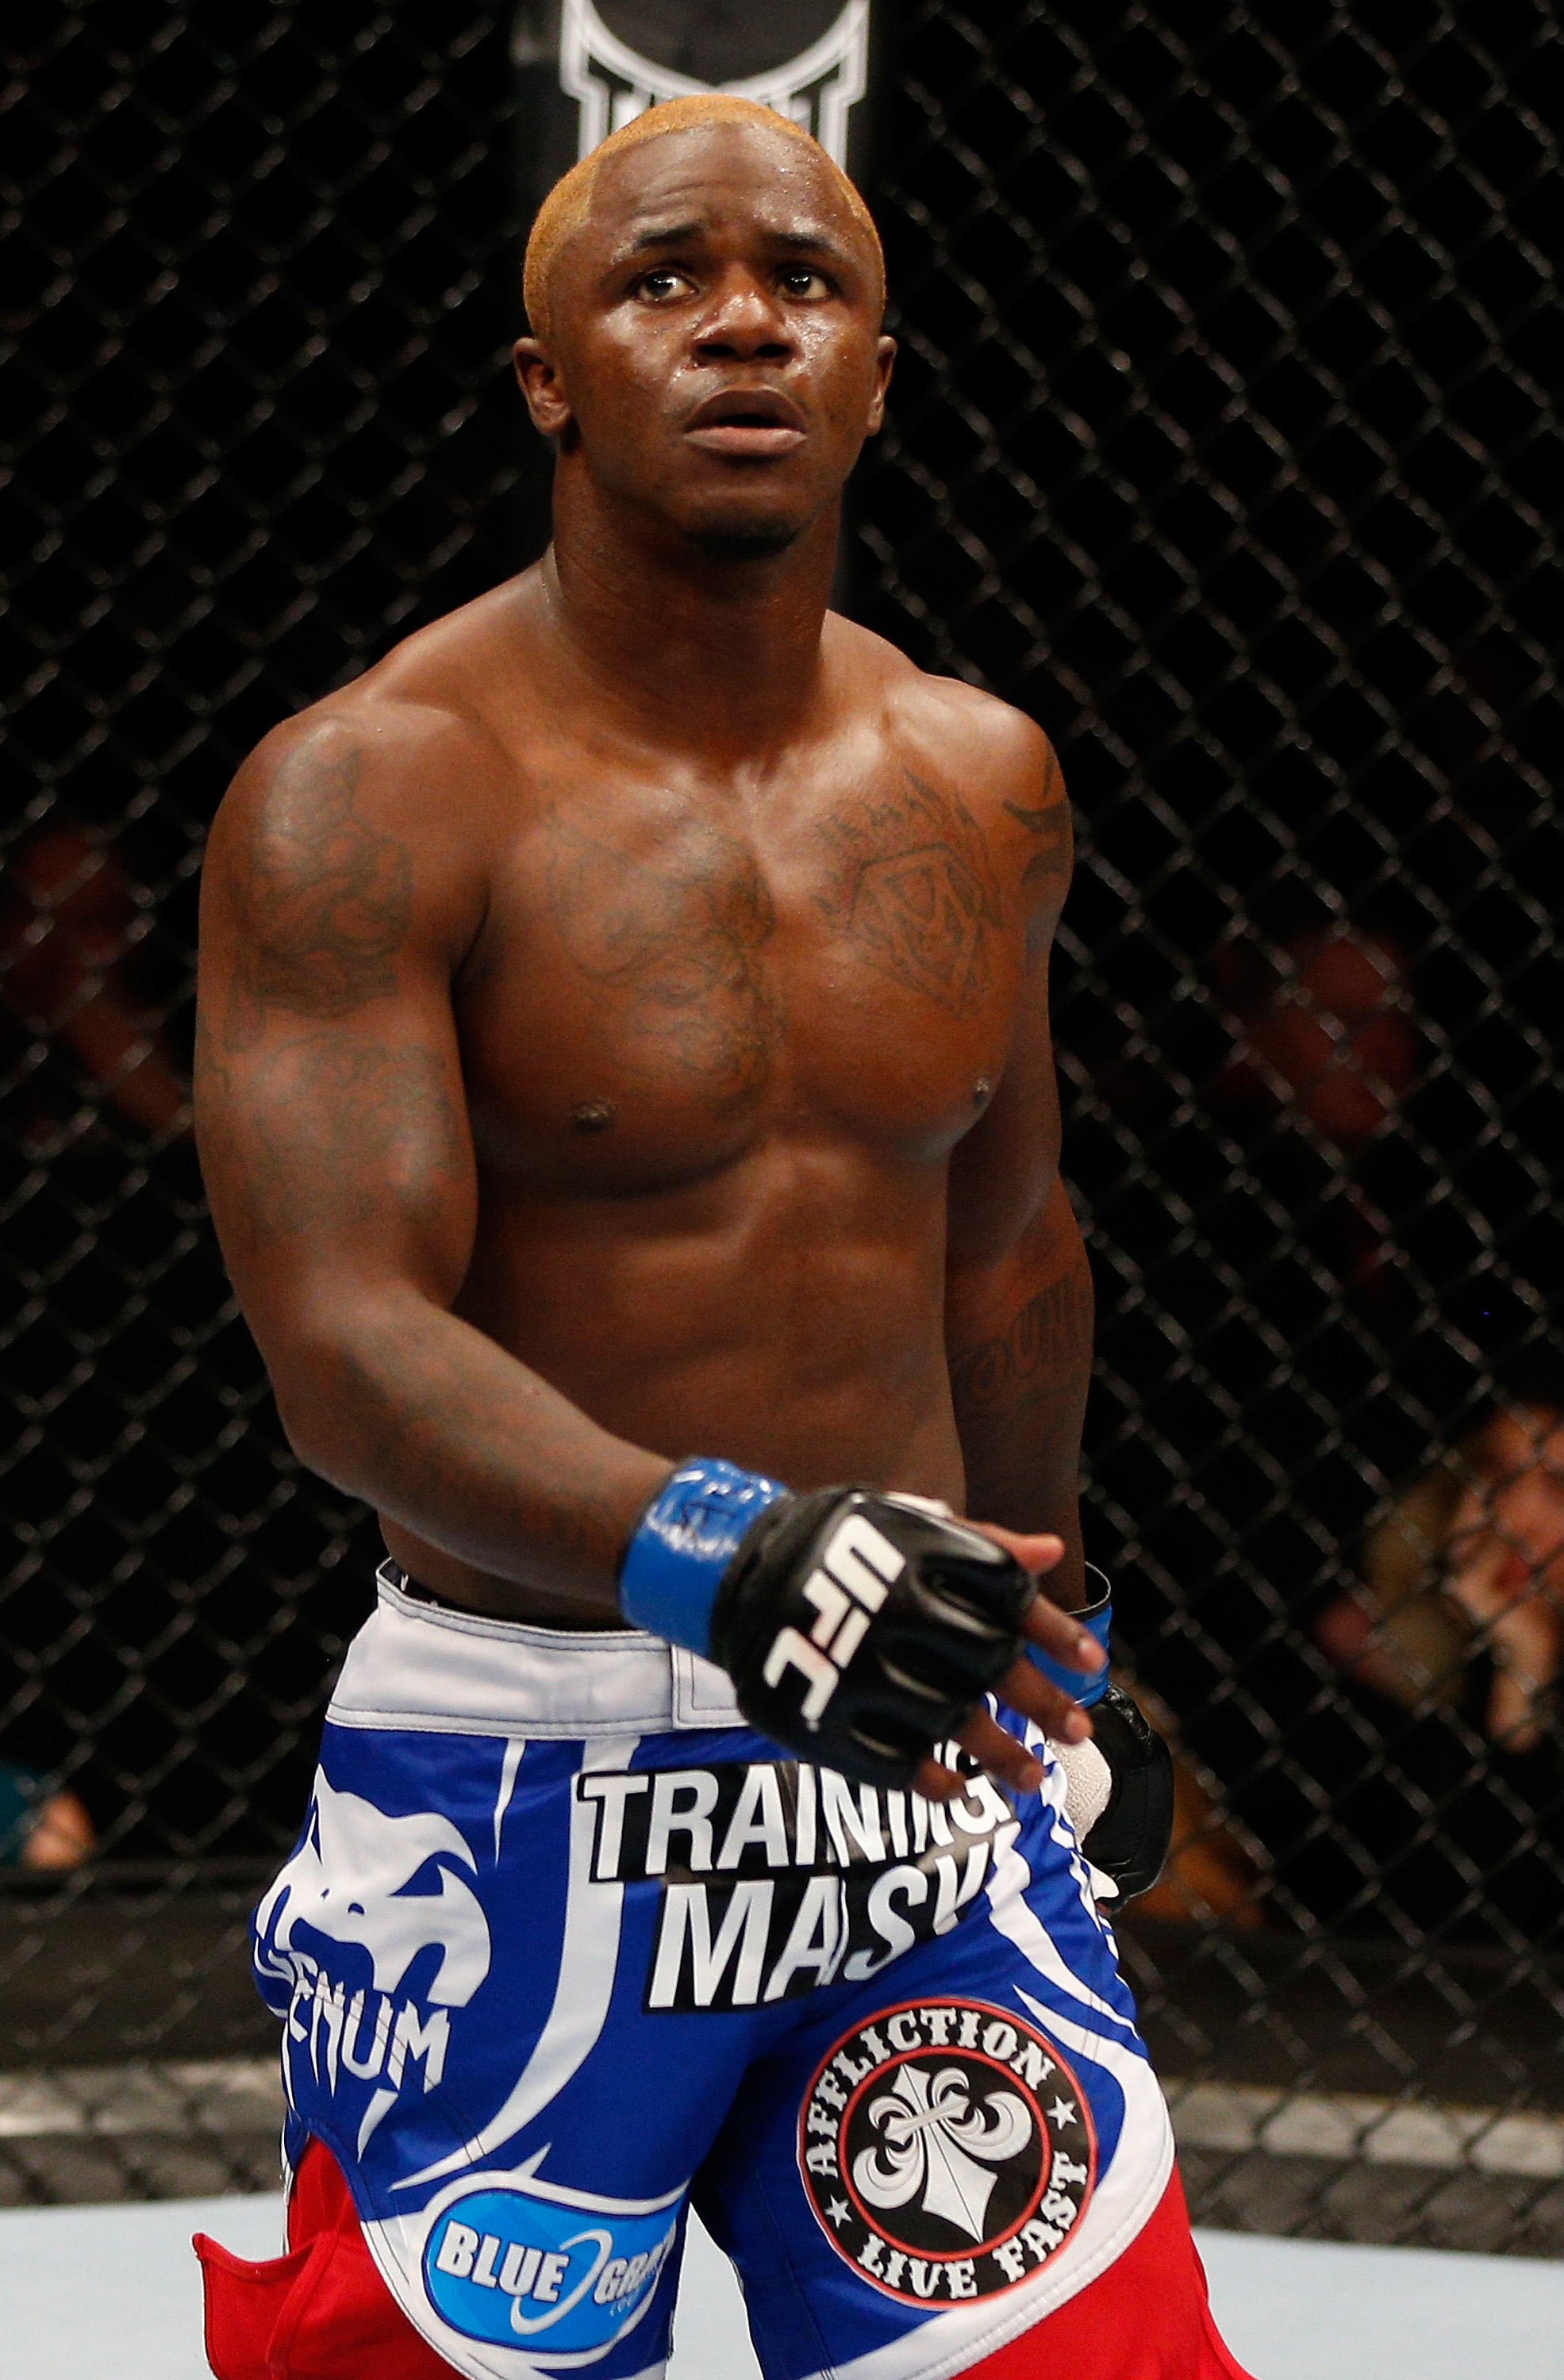 Melvin Guillard during his 2013 fight against Ross Pearson.